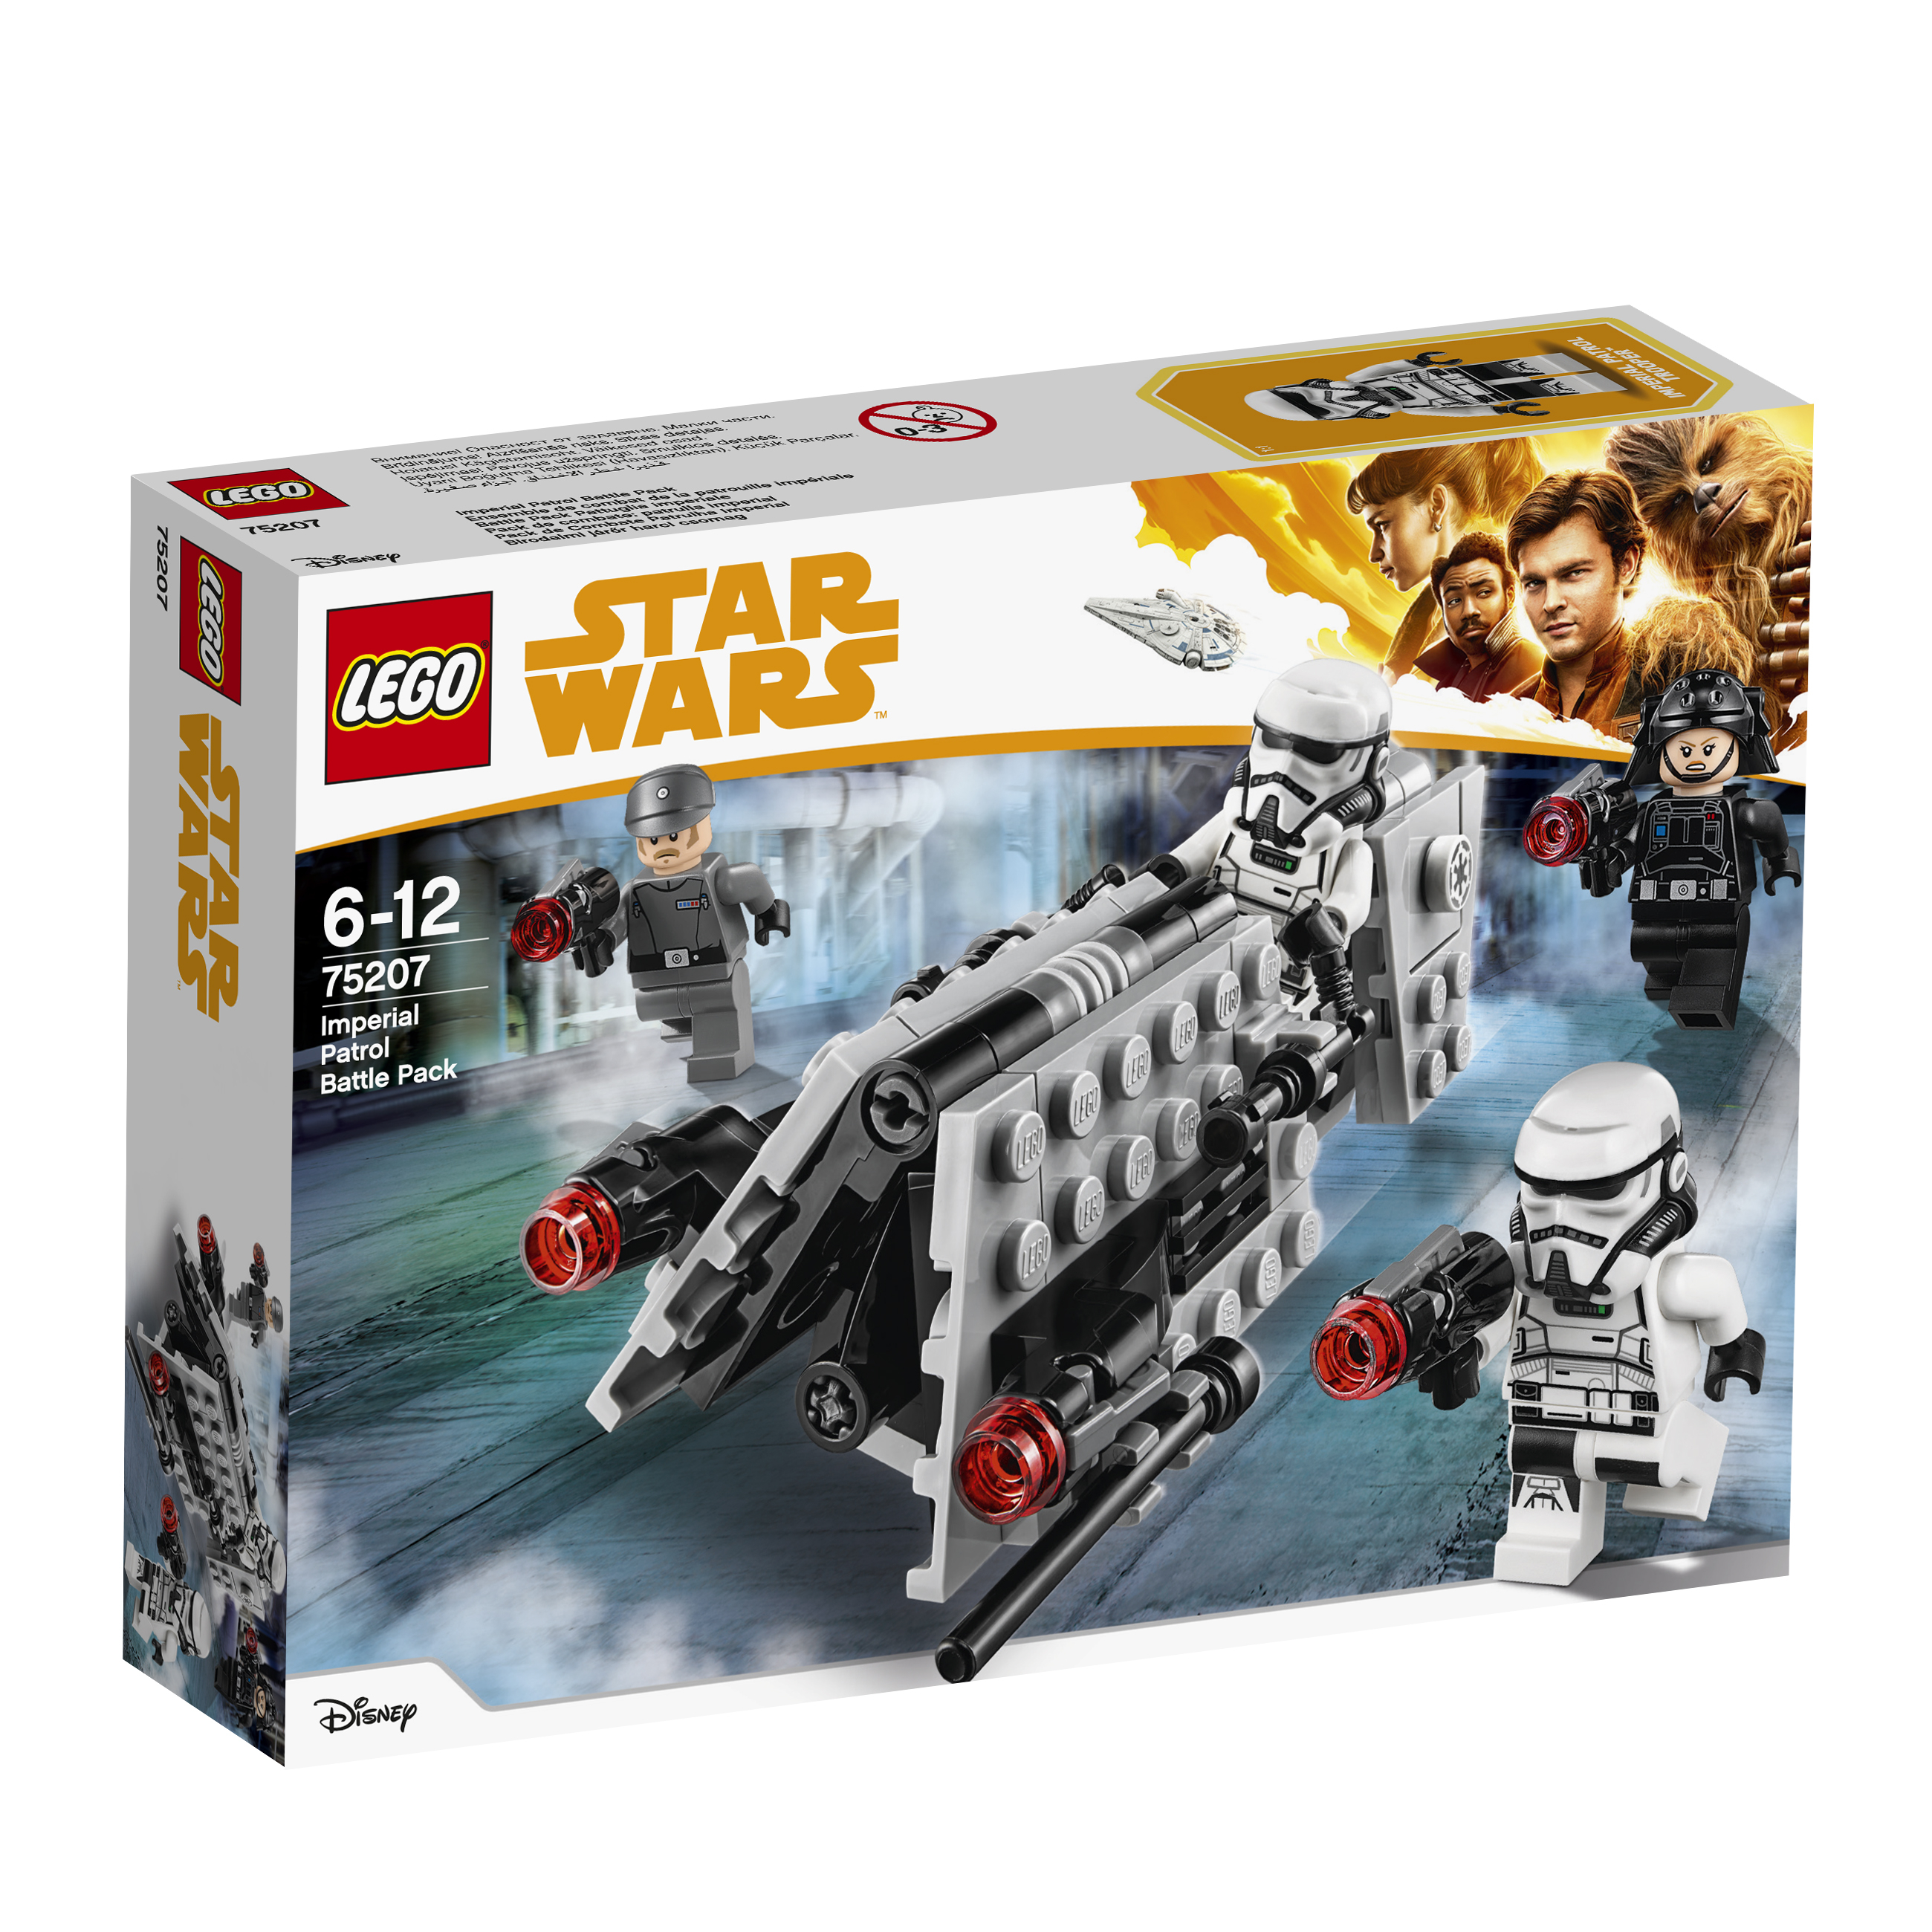 Star Wars LEGO Конструктор LEGO Star Wars 75207 Боевой набор имперского патруля 05065 genuine star wars y wing starfighter lepin building blocks bricks educational toys gift compatiable with lego kid gift set